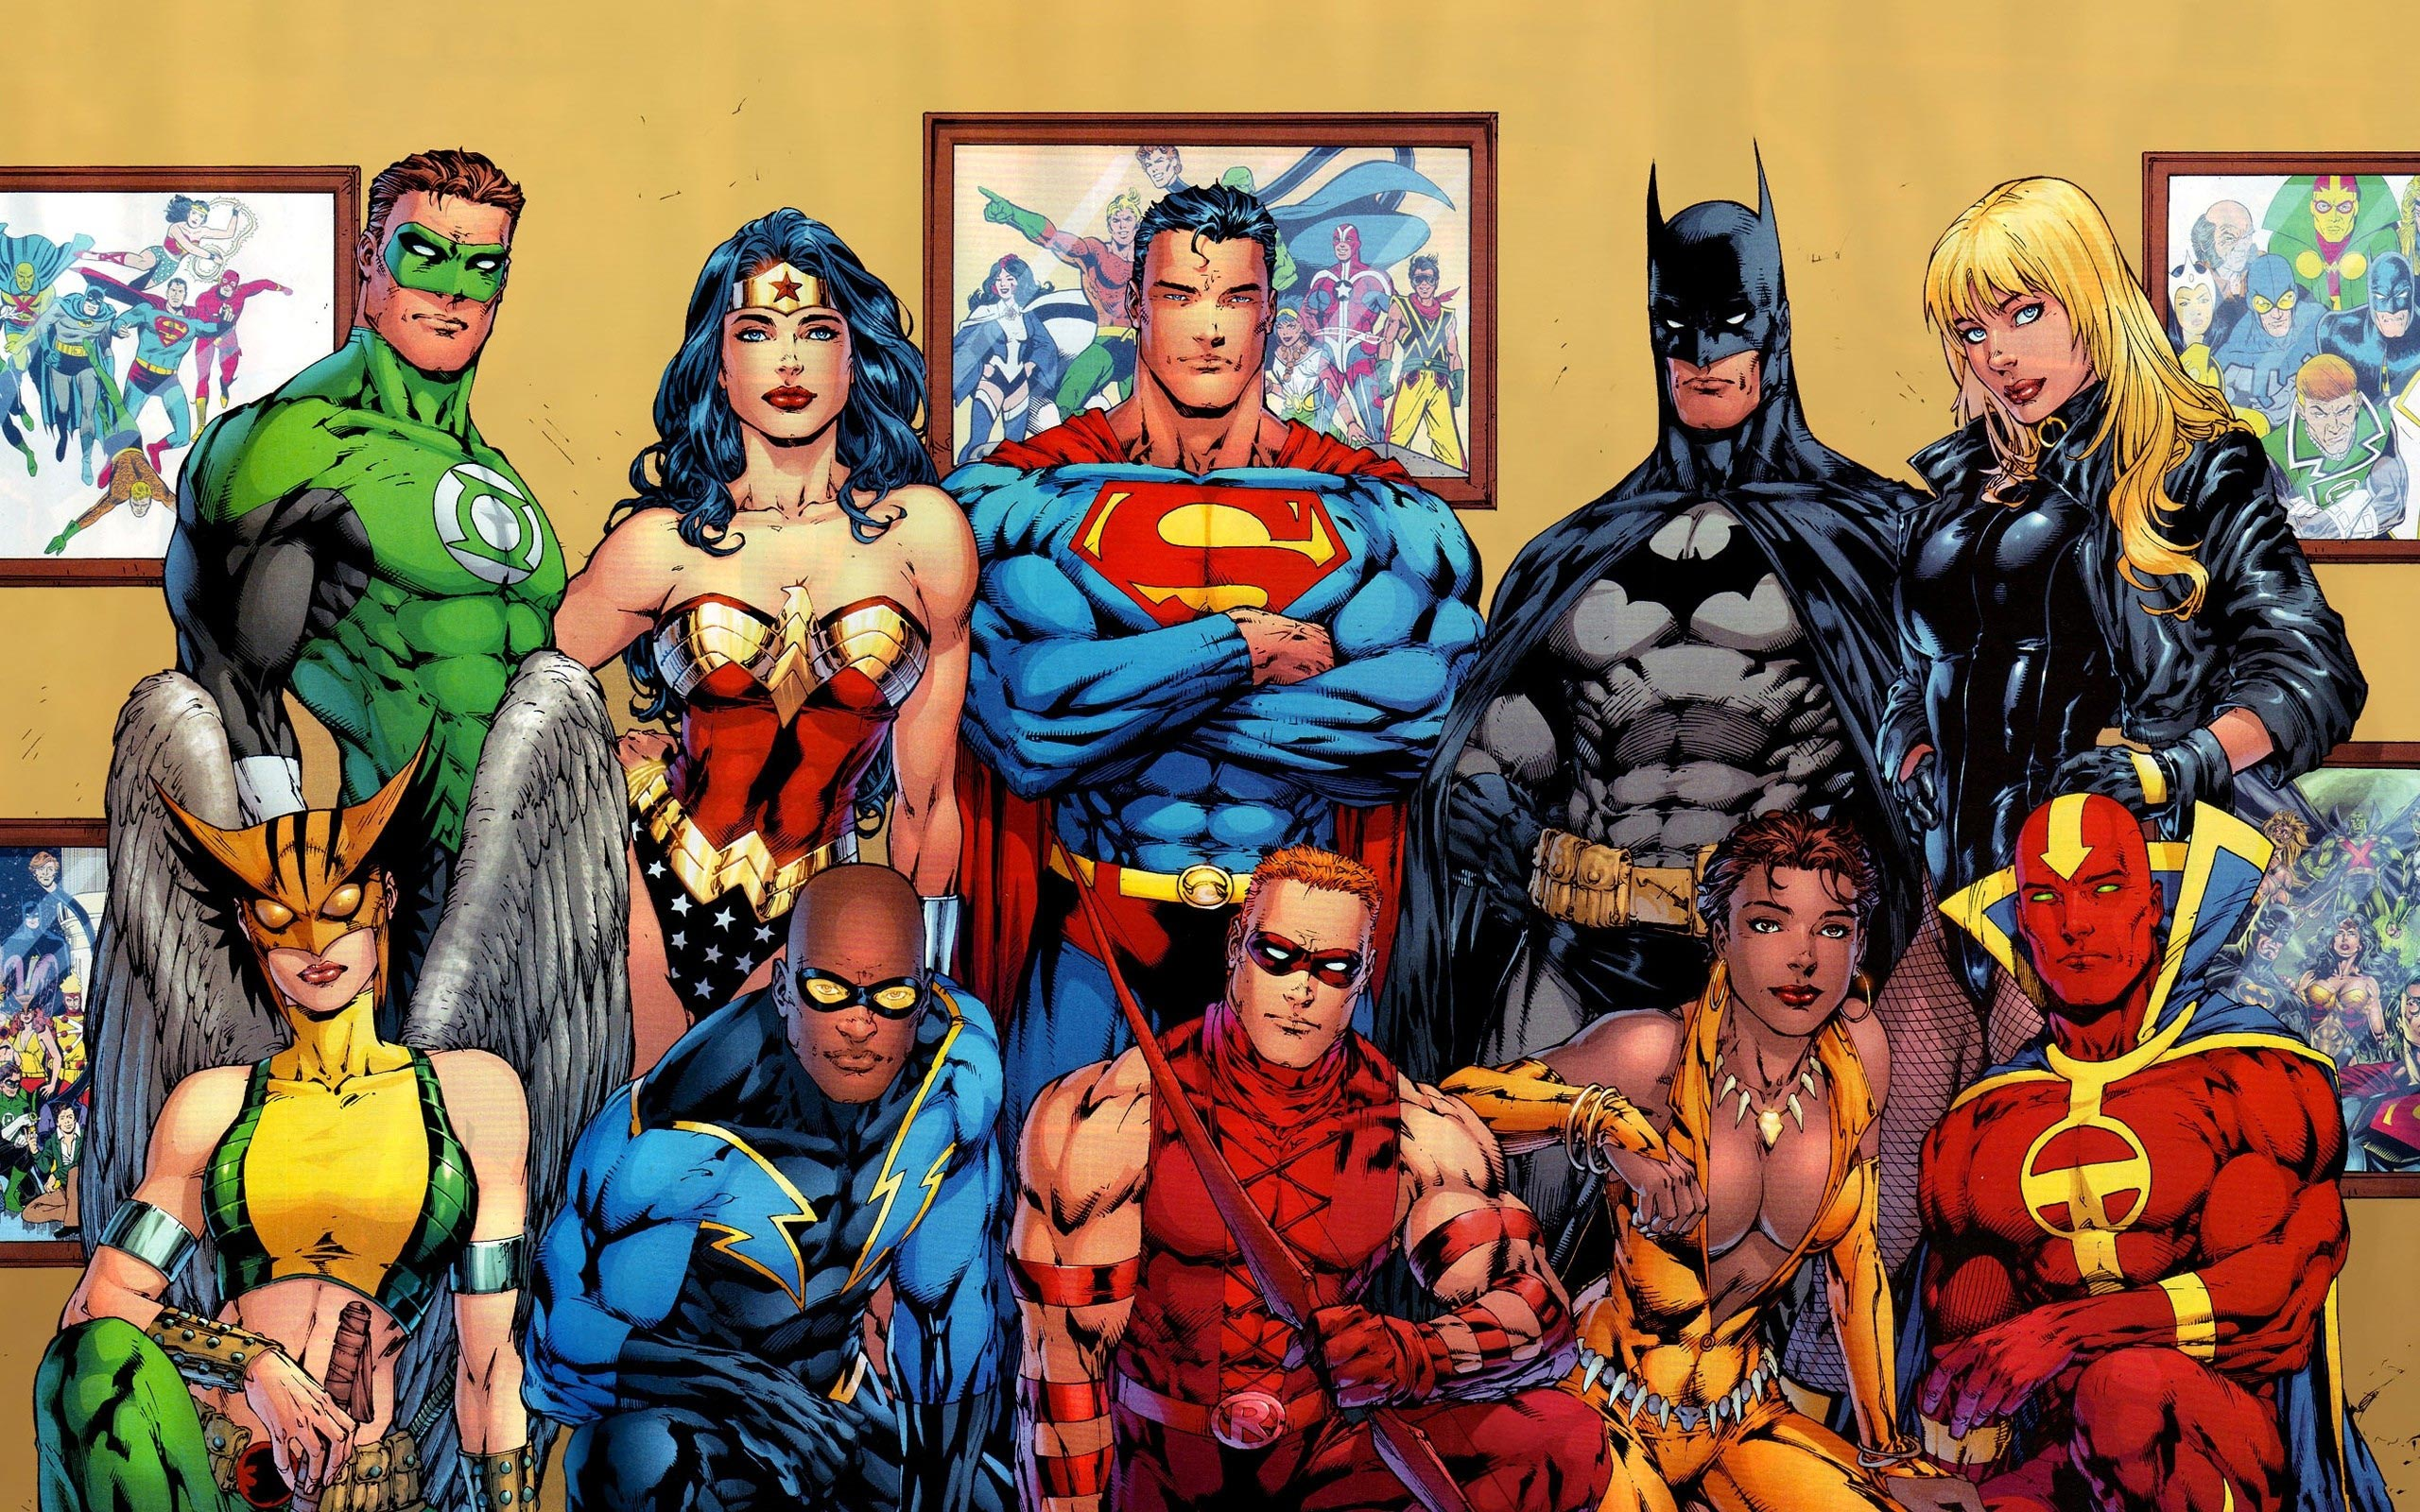 Justice League, all super-hero comics in one image